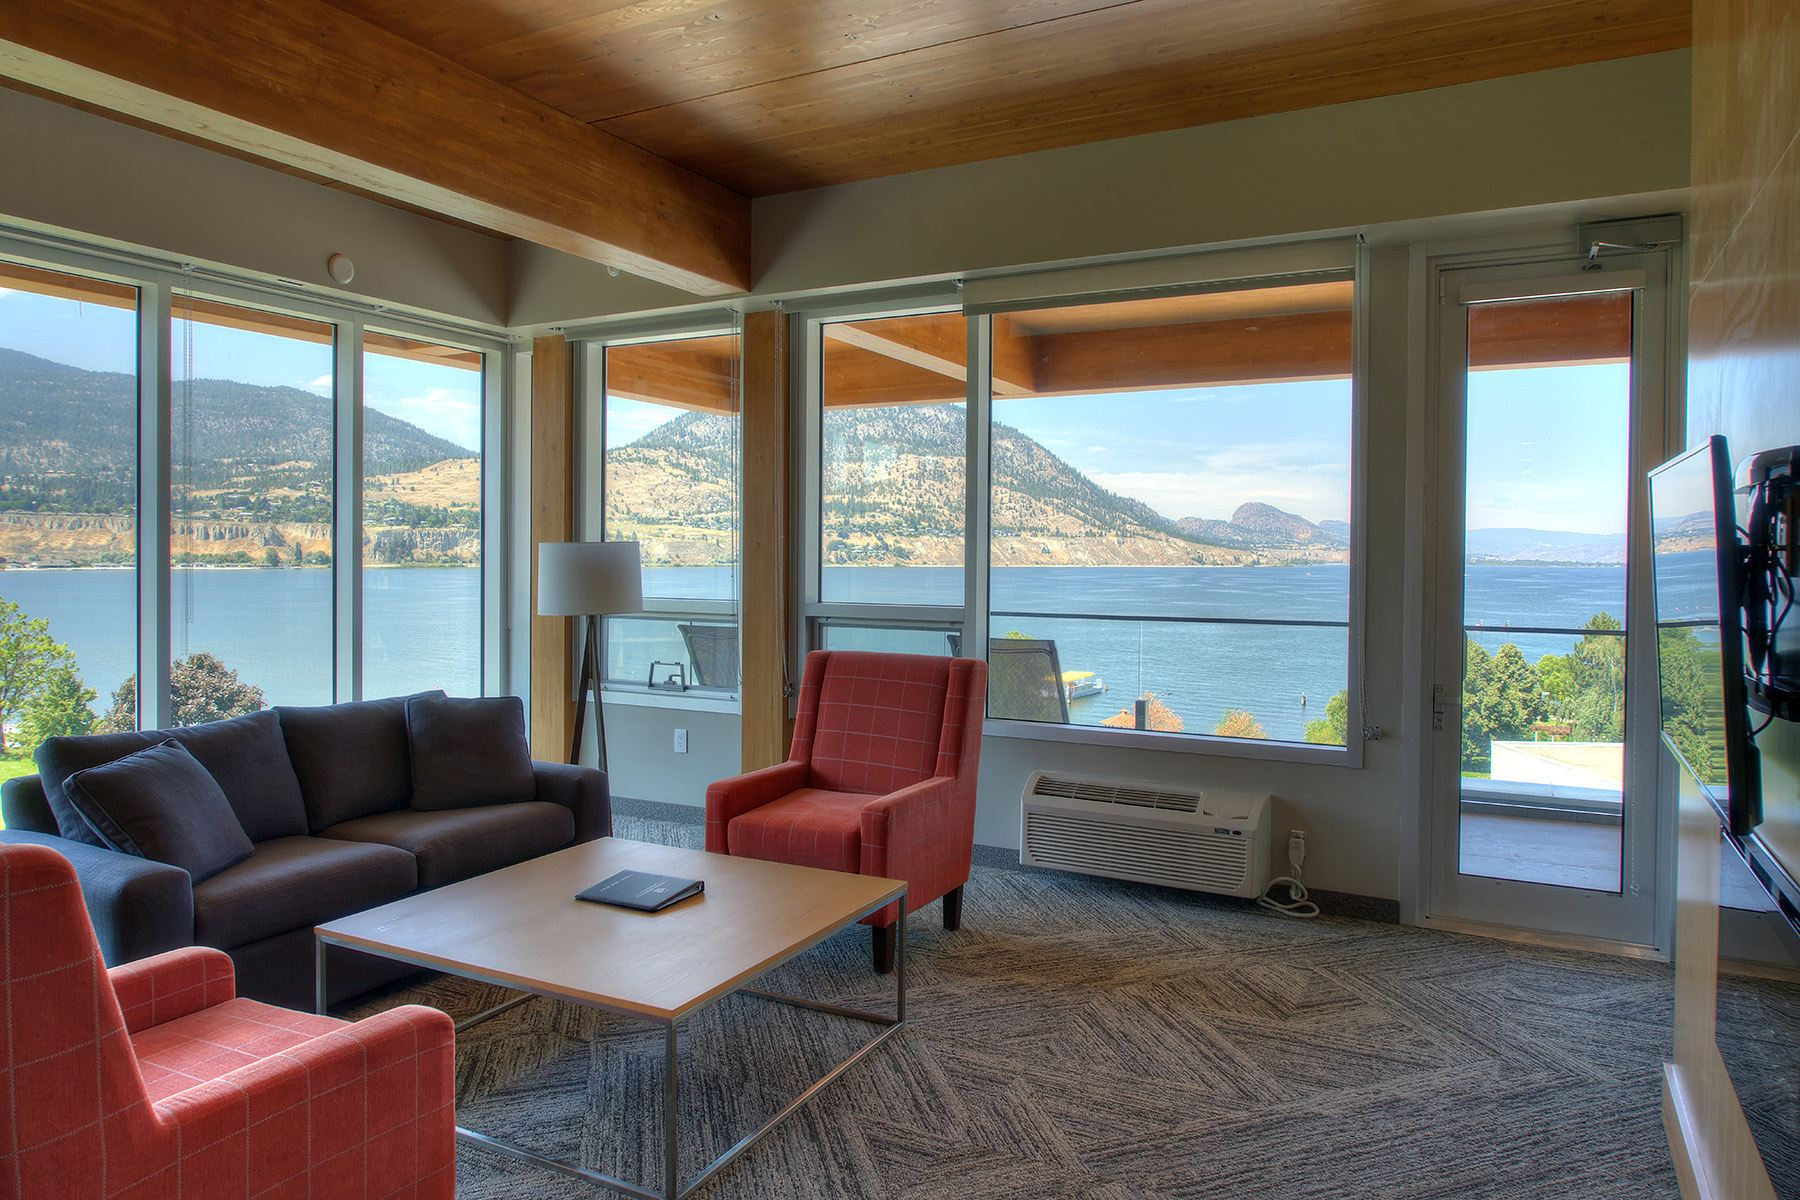 New West Wing of Penticton Lakeside Resort Is Now Open To The Public